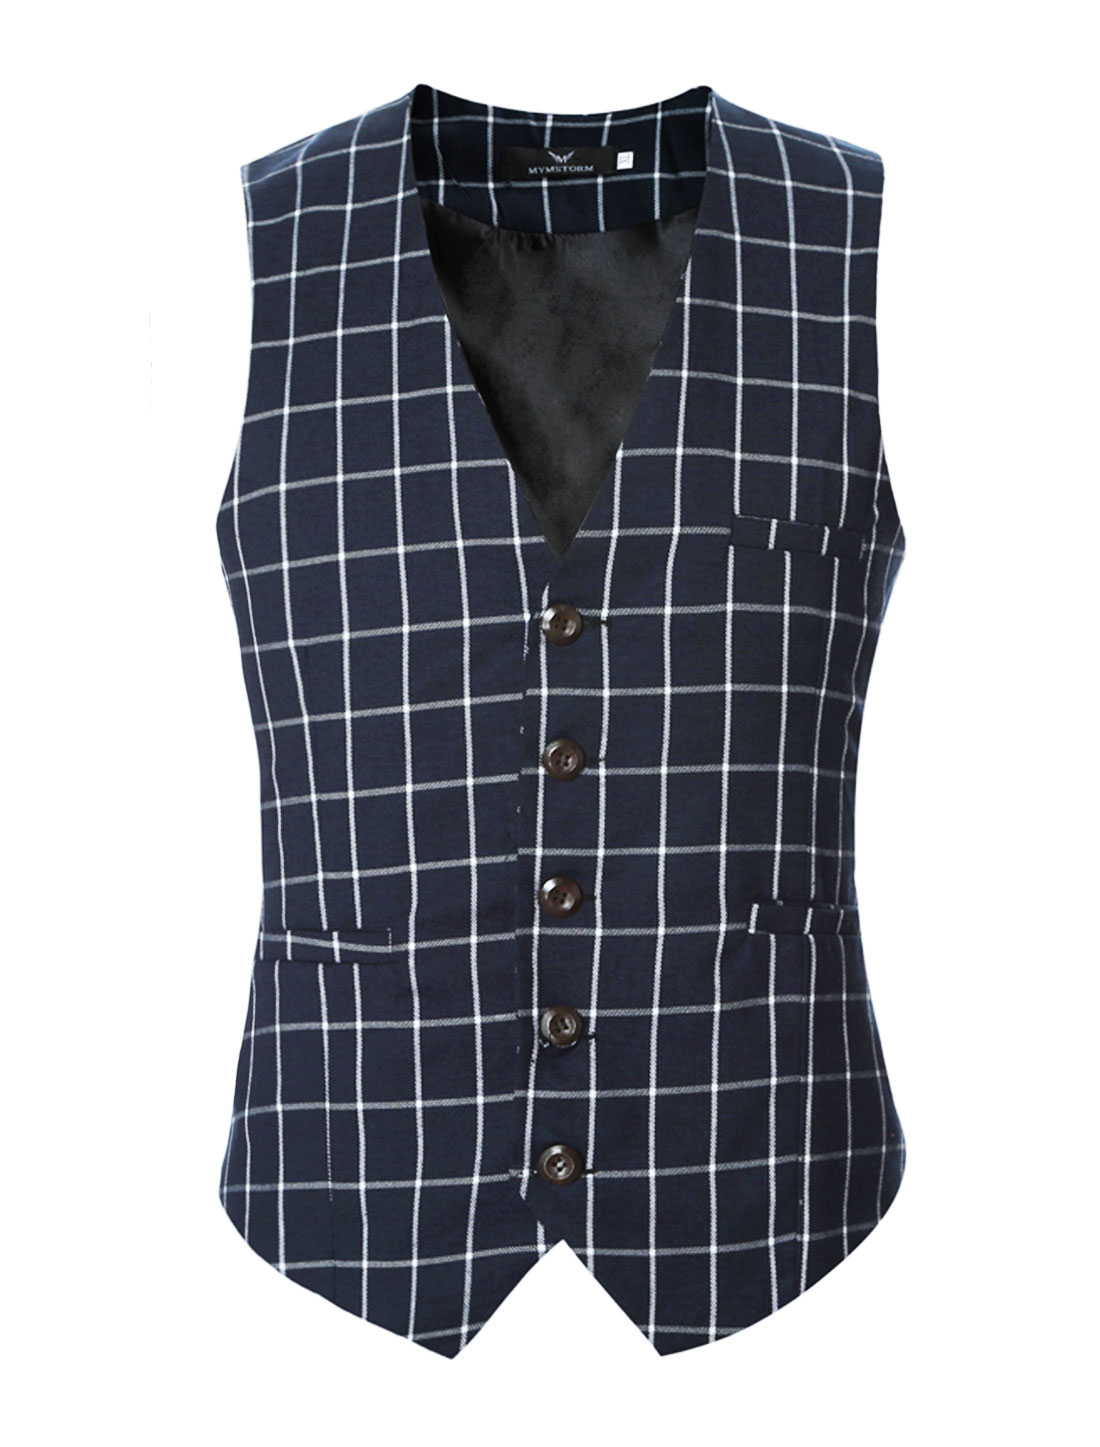 Men V Neck Checks Adjustable Buckle Back Slim Fit Vest Navy Blue S